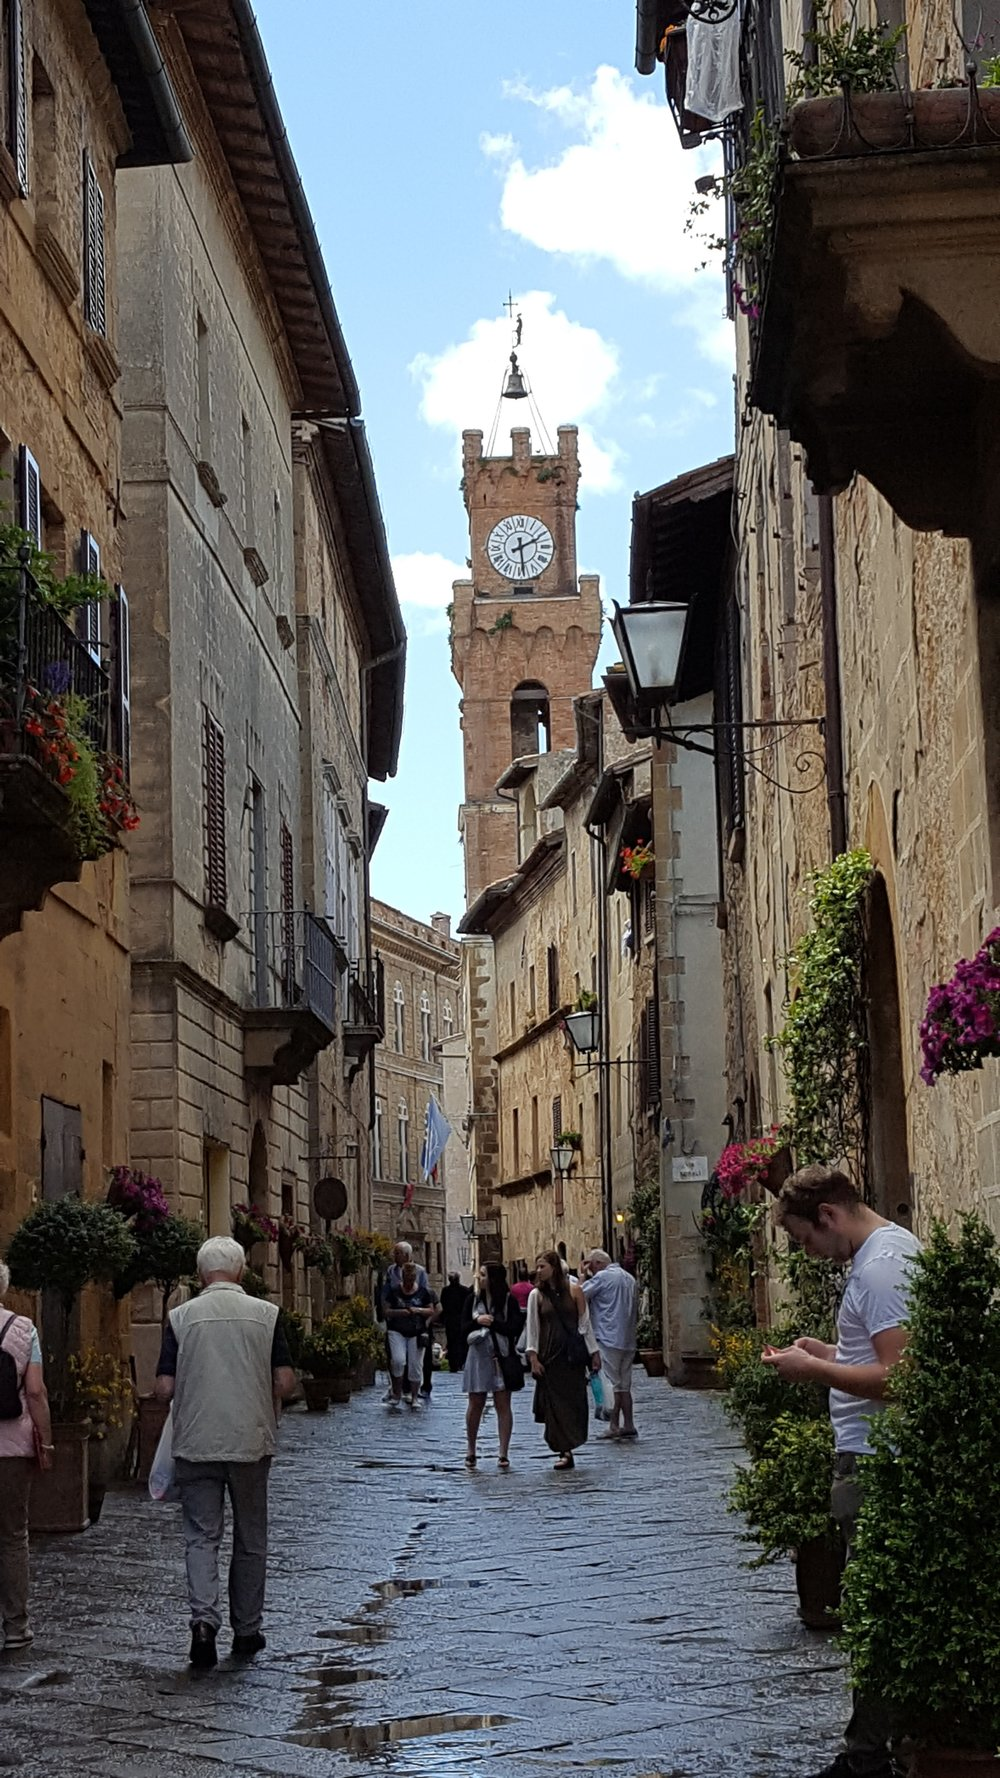 The streets of Pienza